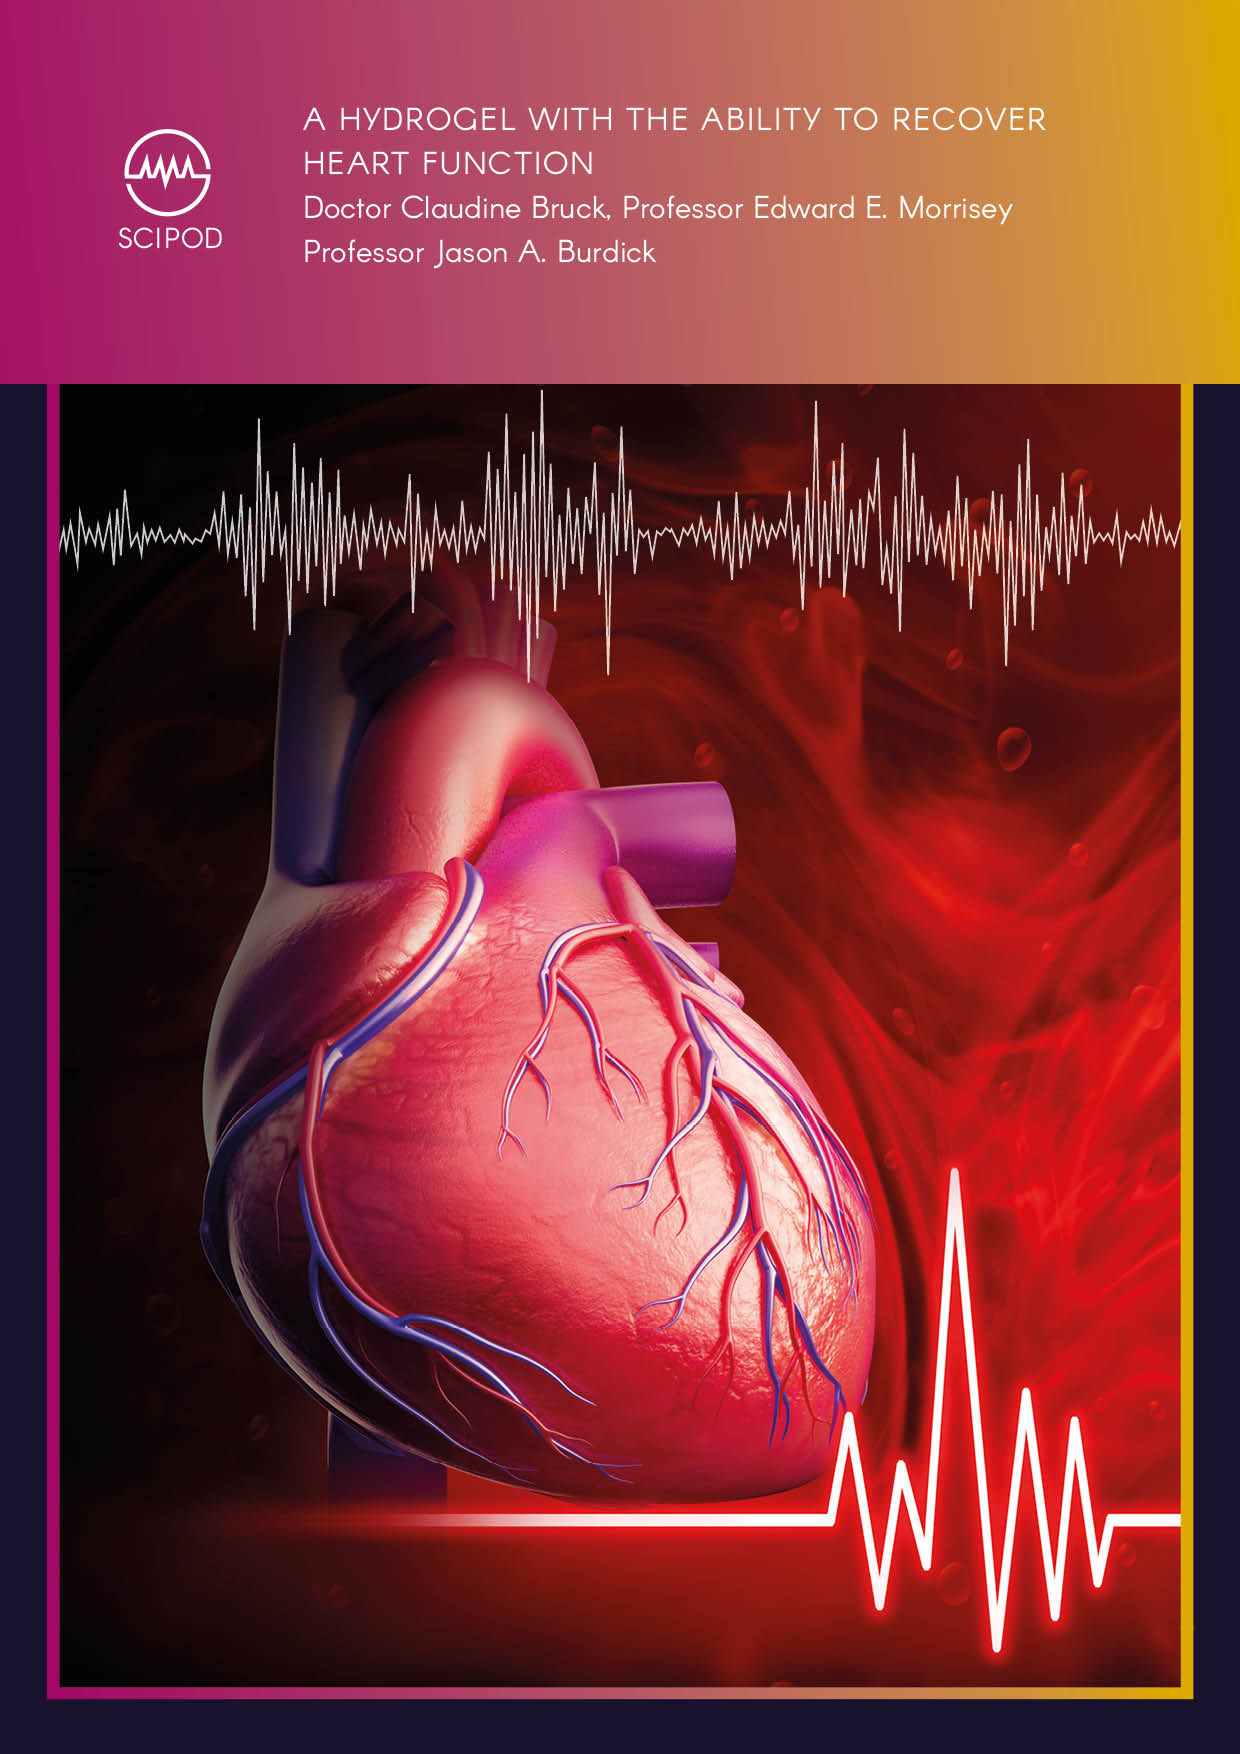 A Hydrogel with the Ability to Recover Heart Function